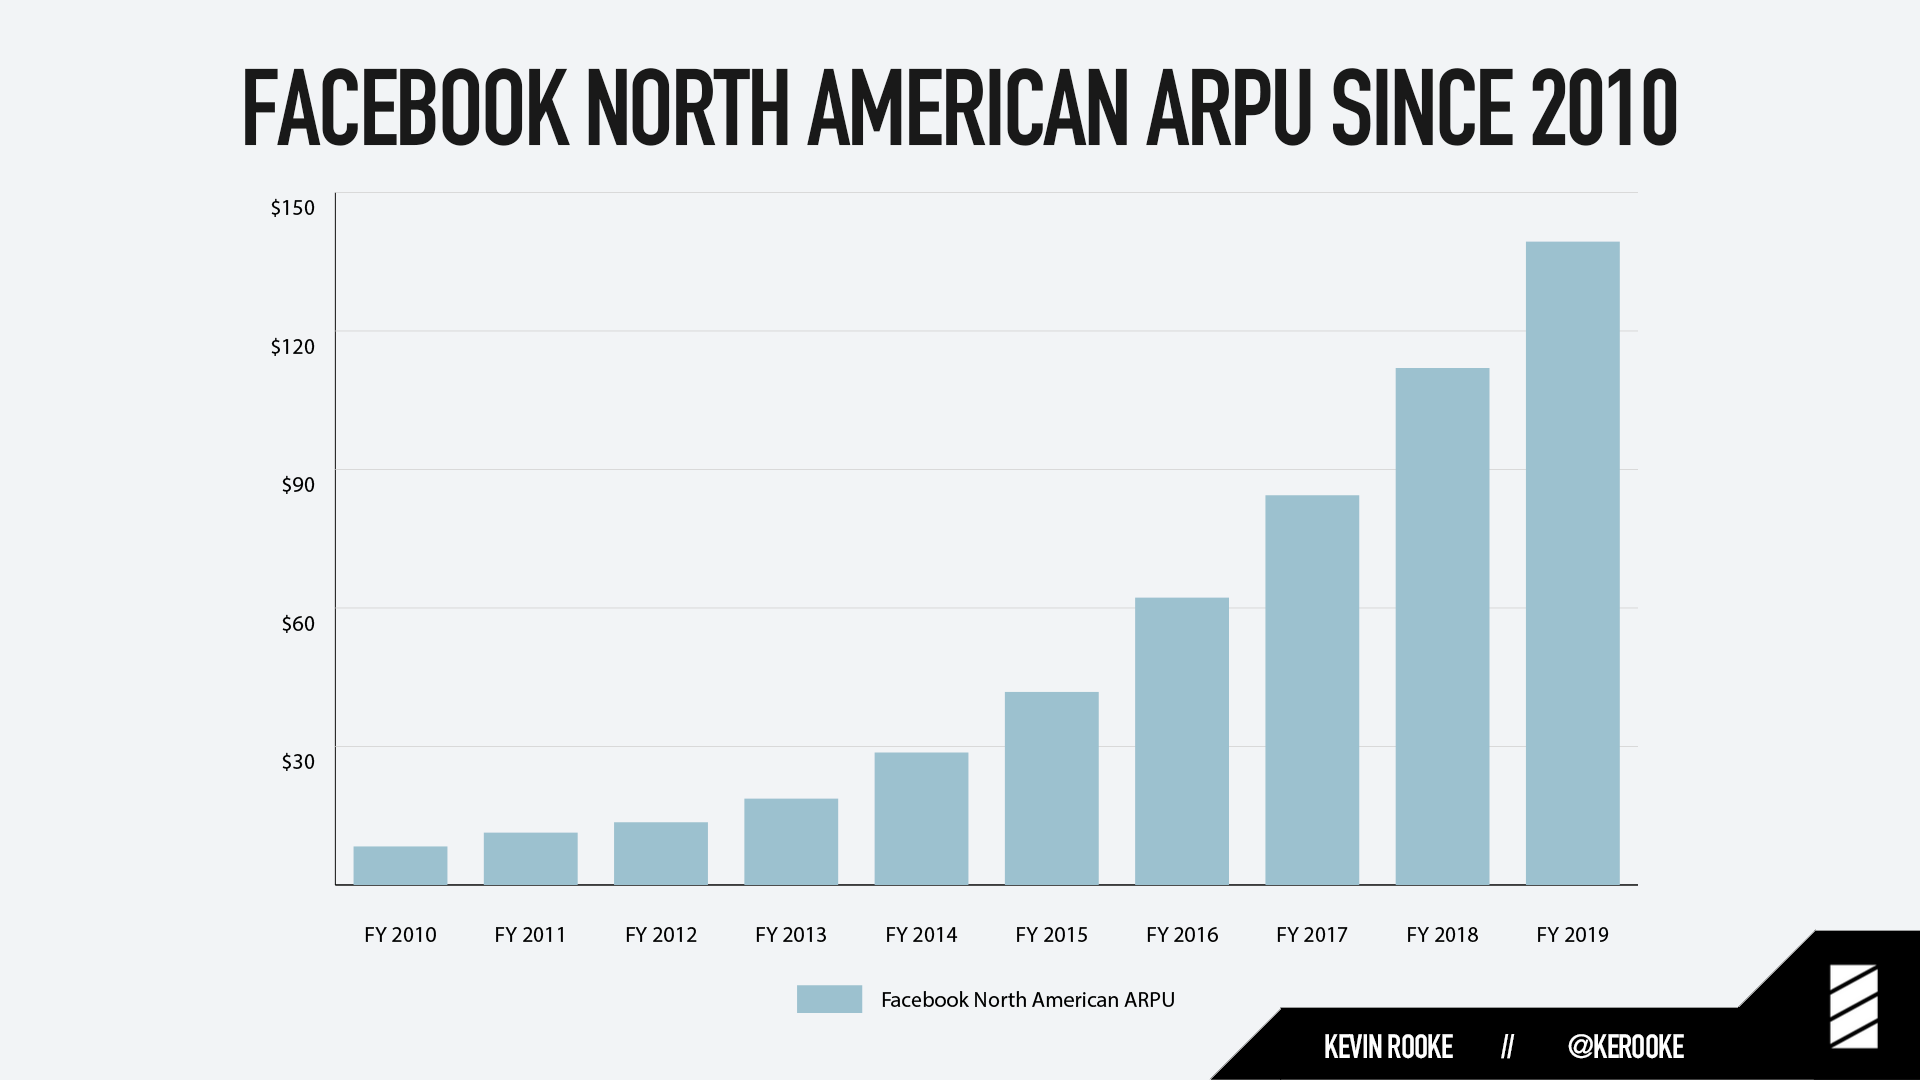 Facebook made over $139 from the average North American user in 2019, and the actual cost to each user is roughly 10-20x higher than that.